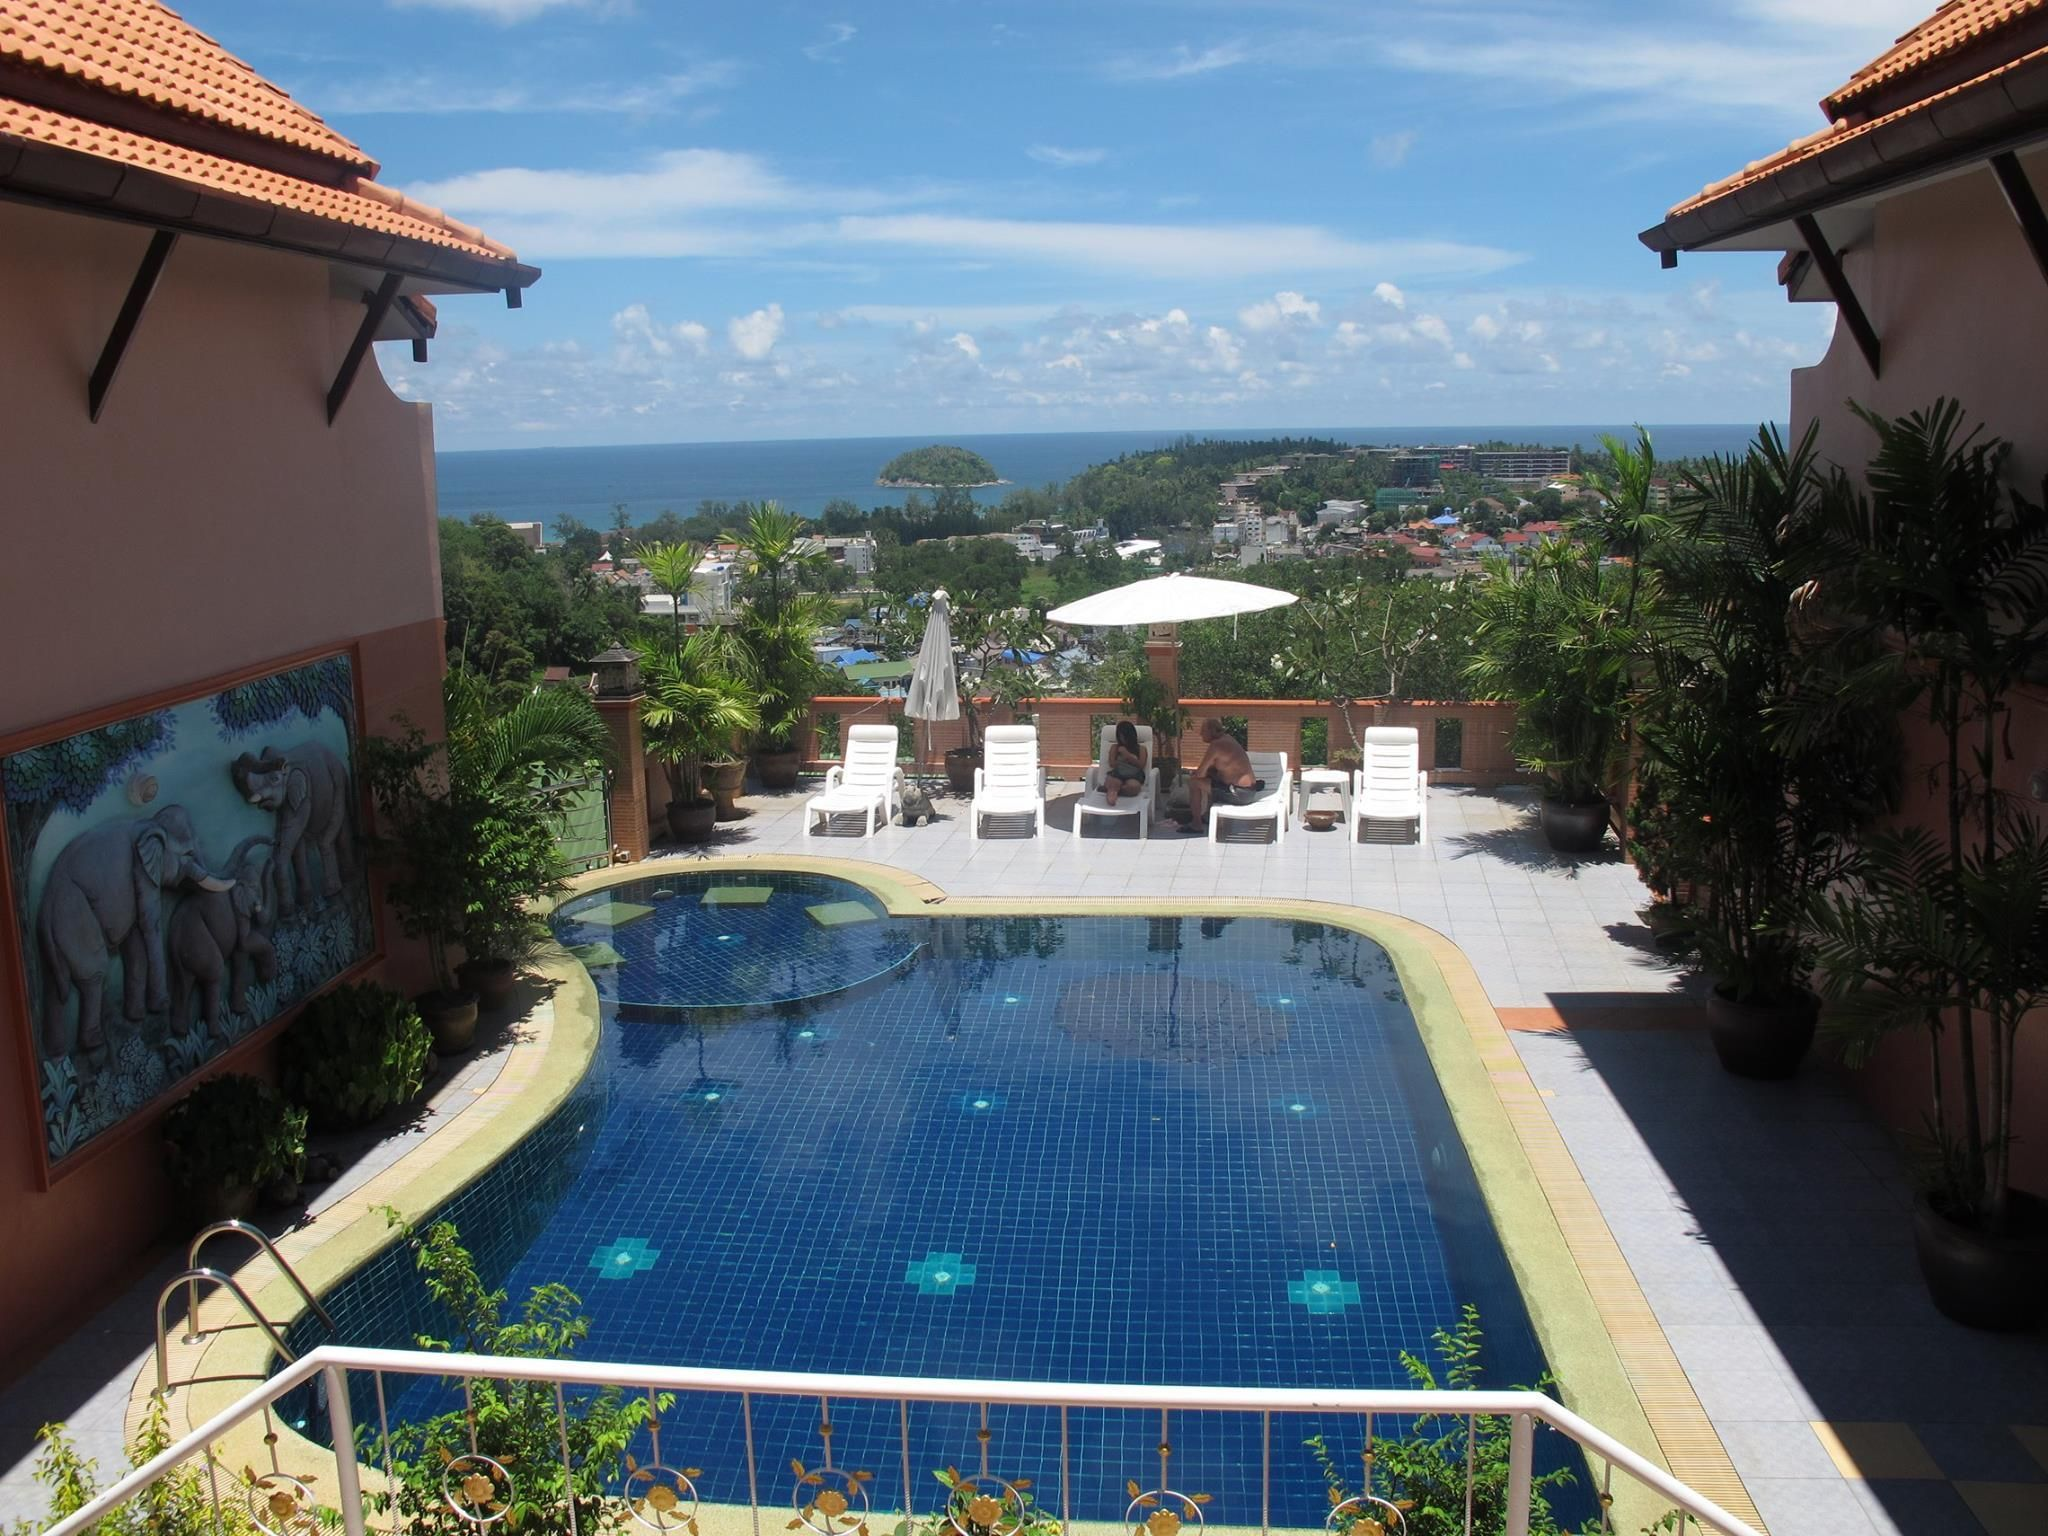 Features resorts in Thailand